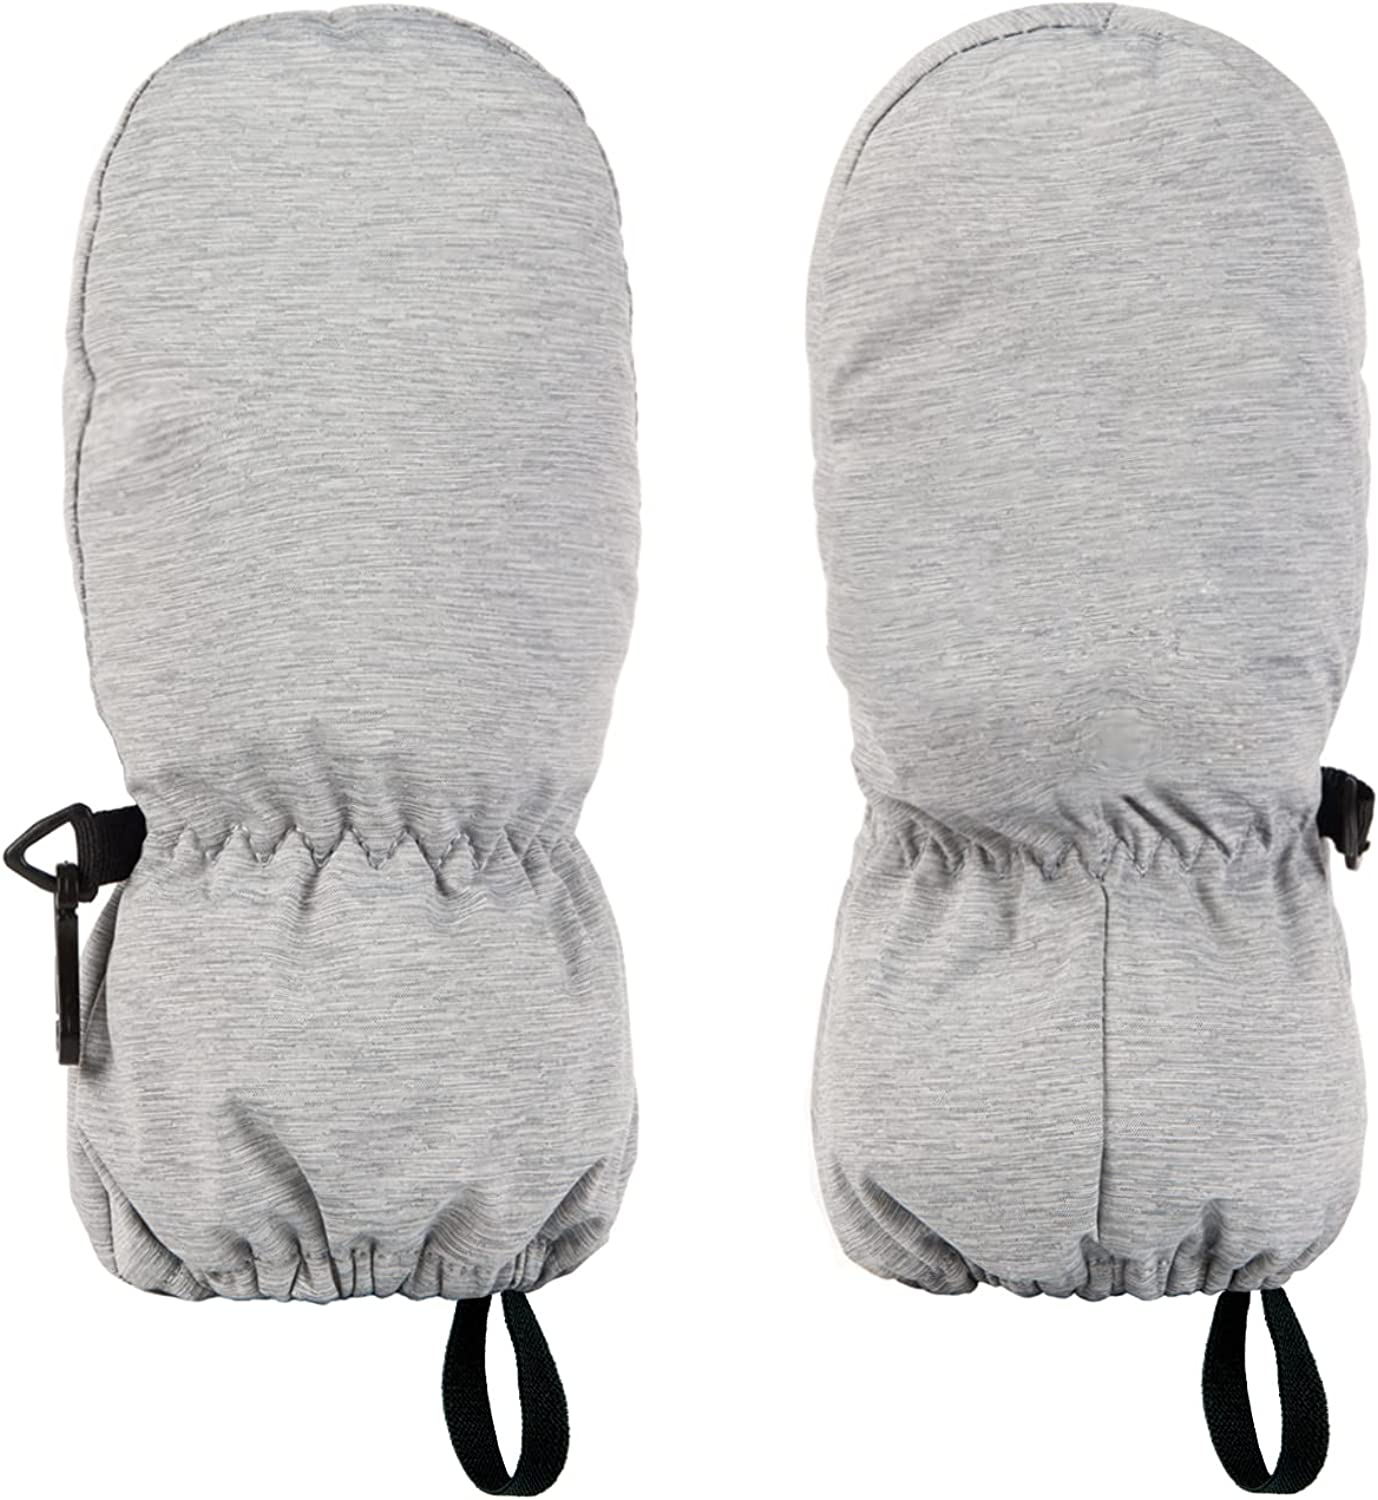 HIGHCAMP Toddlers Kids Winter Snow Mittens Waterproof Infant Baby Cold Weather Glove Easy on Stay on